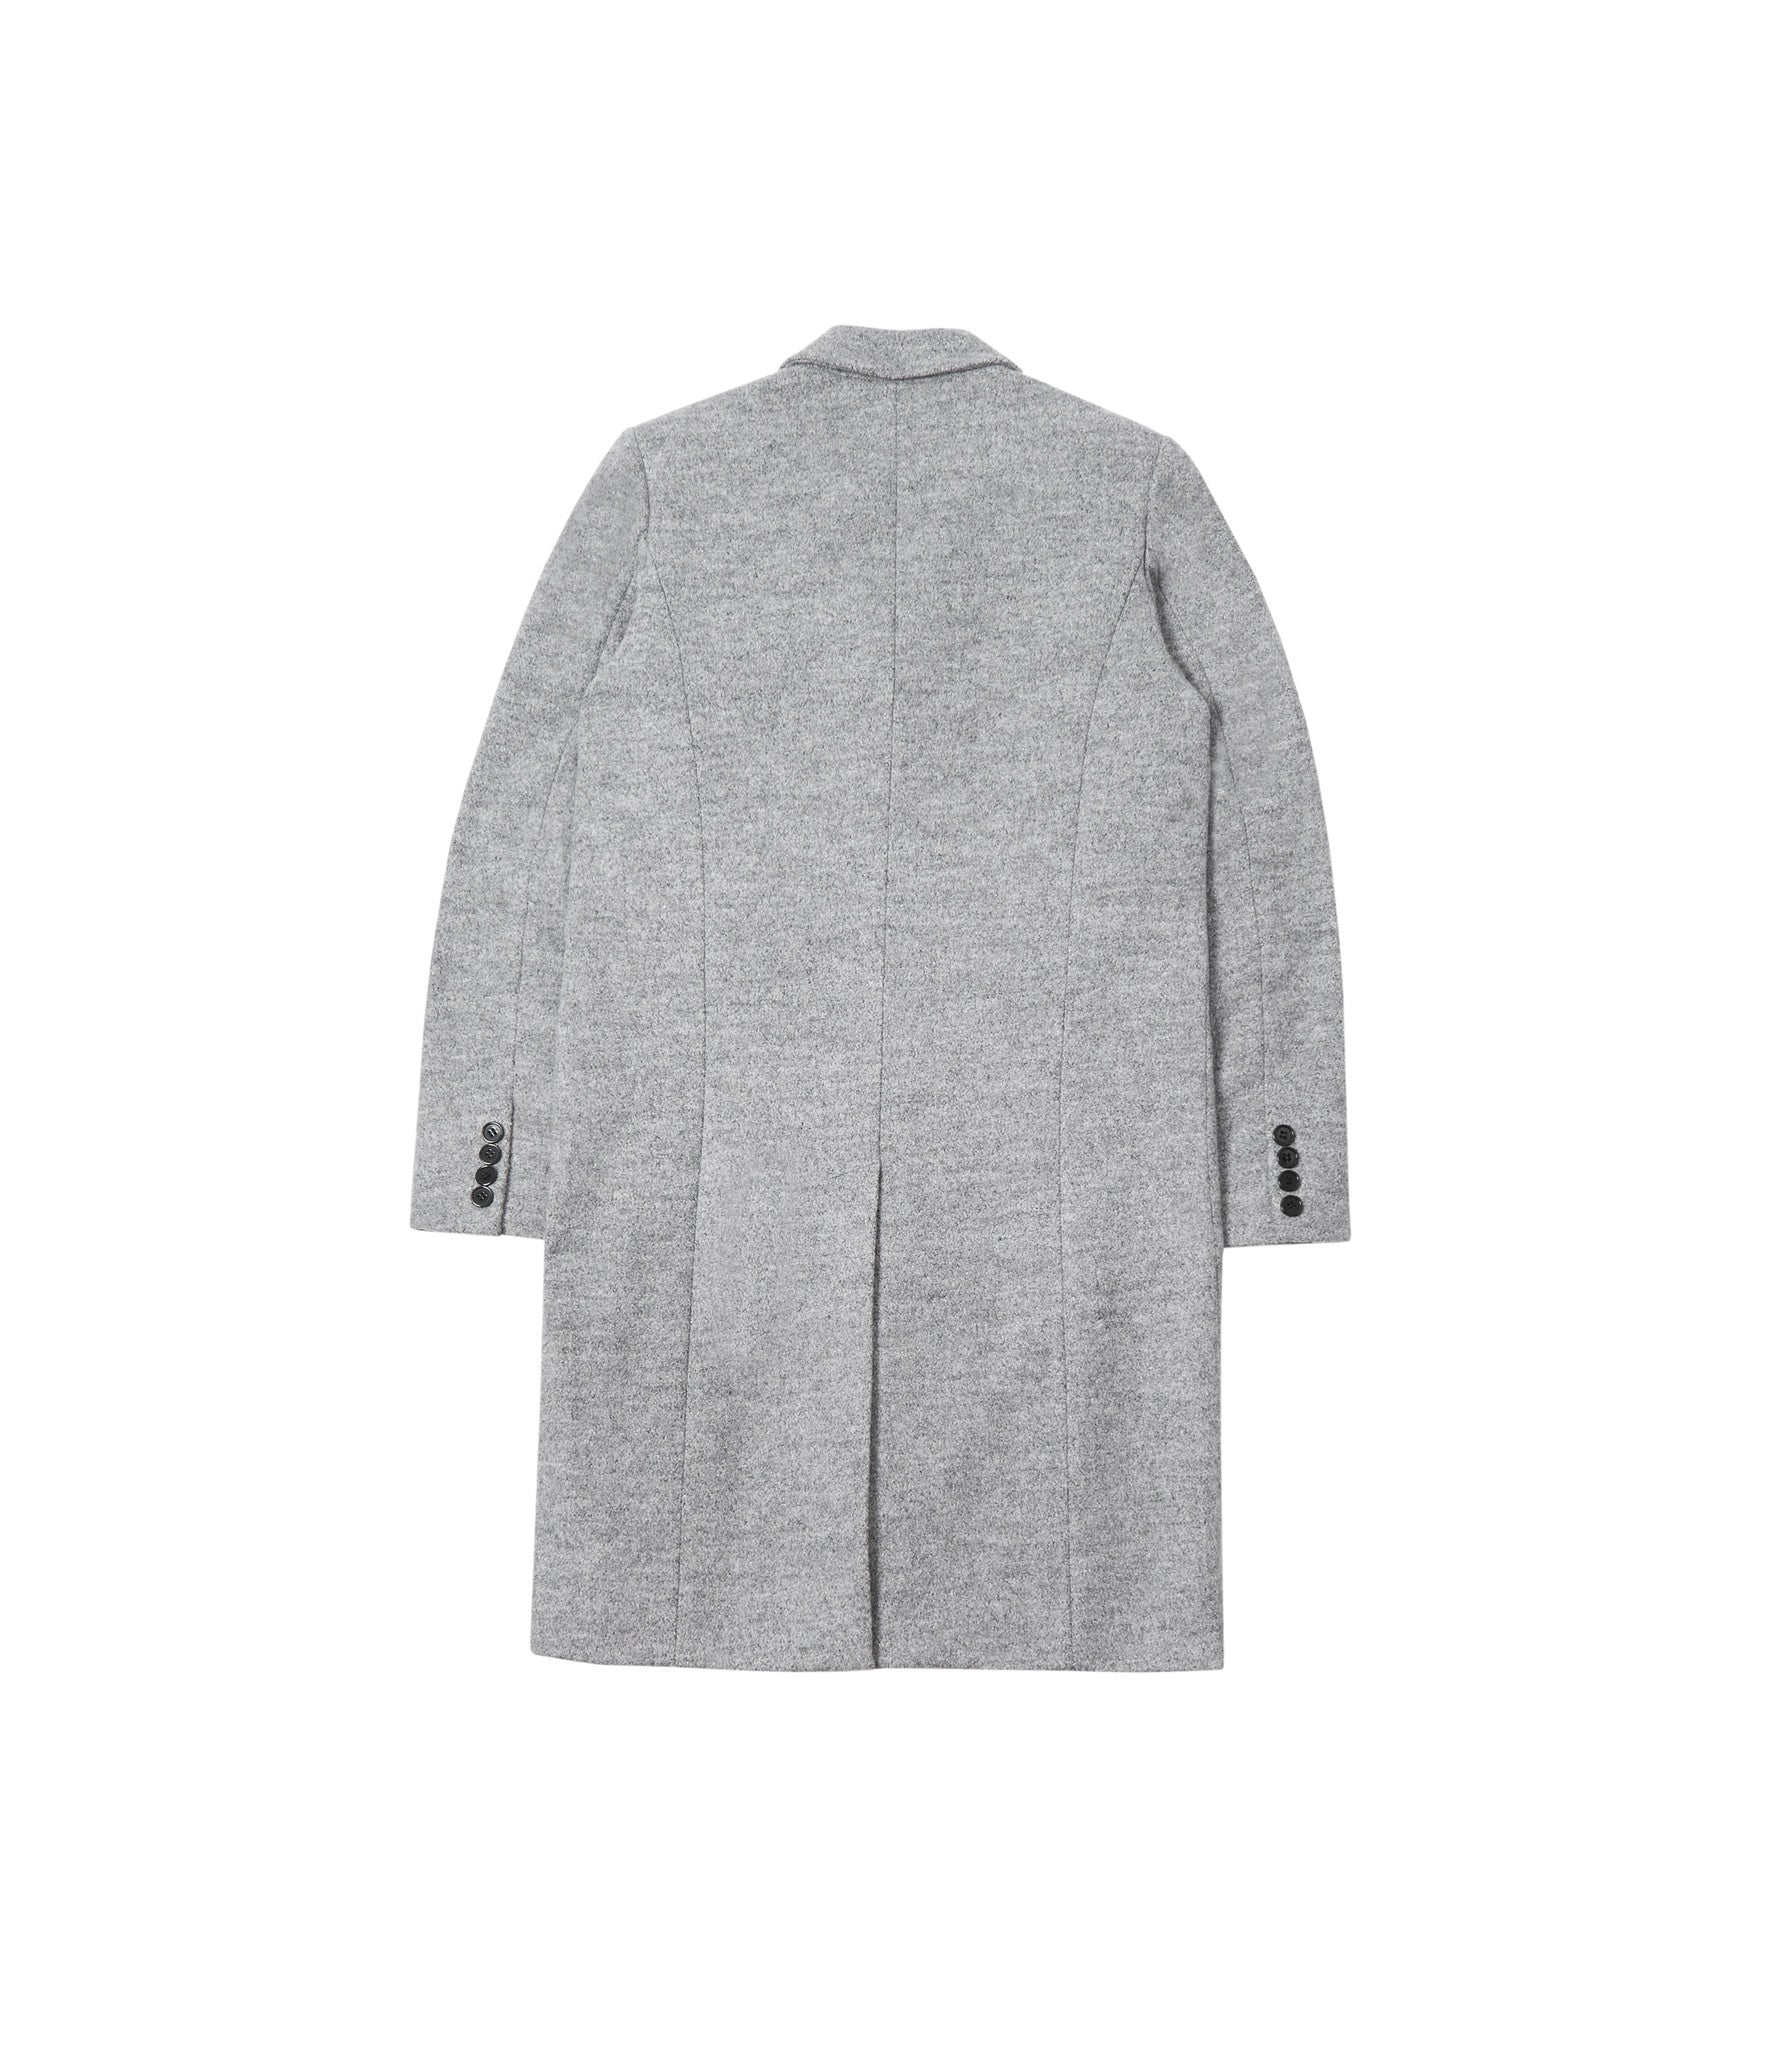 JK212 Mélange Wool Blend Overcoat - Grey - underated london - underatedco - 3